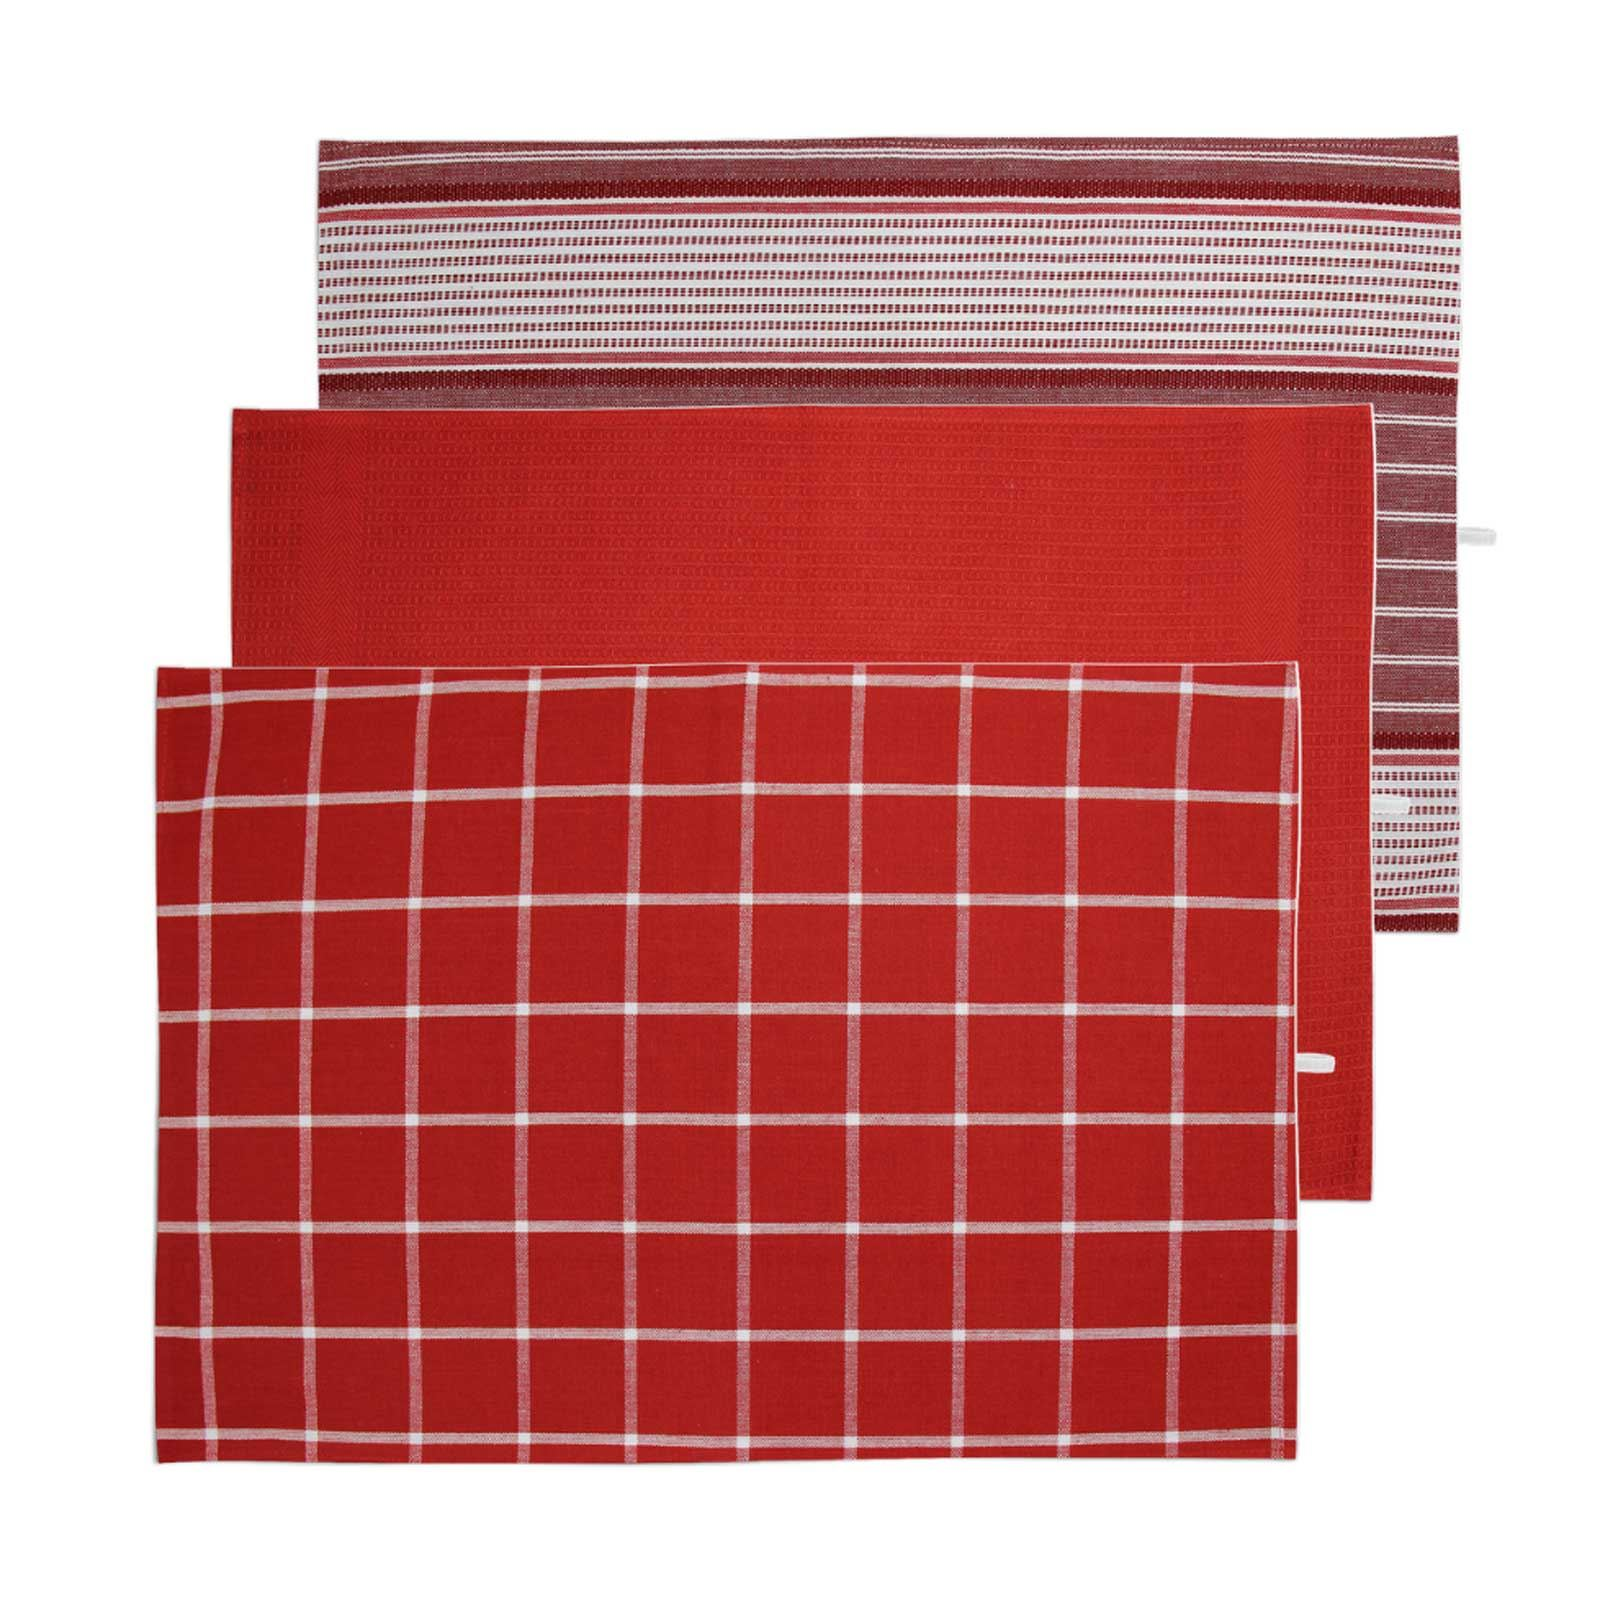 Pack-of-3-Tea-Towels-100-Cotton-Kitchen-Dish-Towel-Drying-Set thumbnail 39